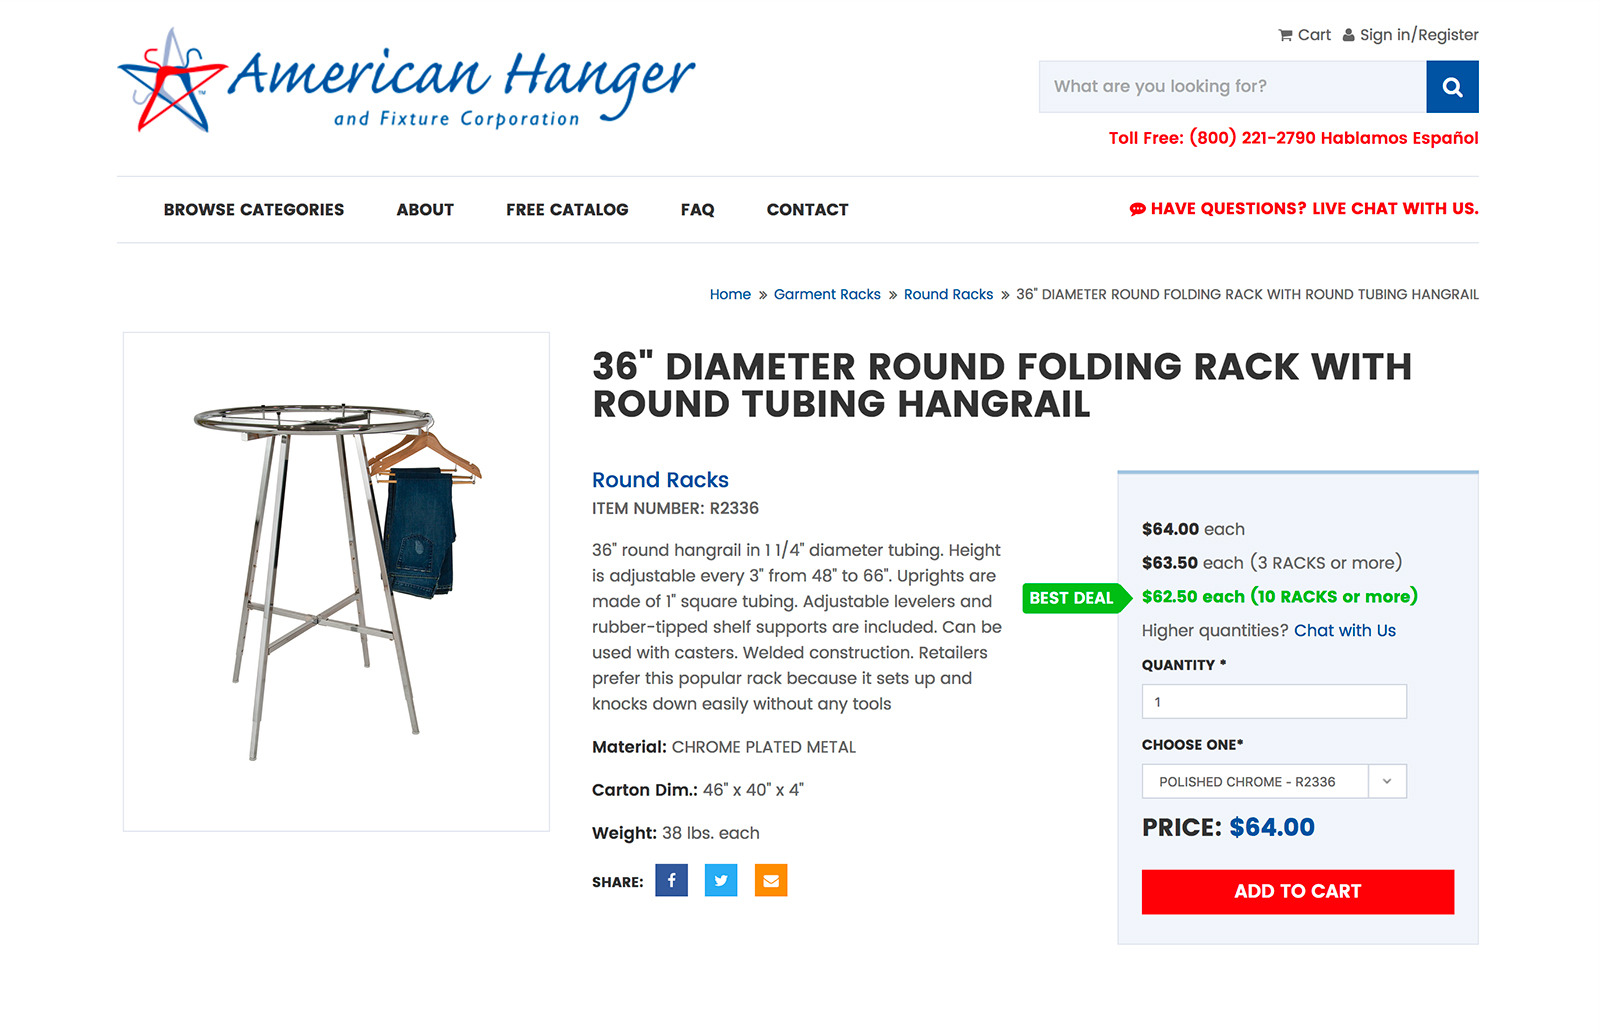 American Hanger and Fixture Corporation Image 1